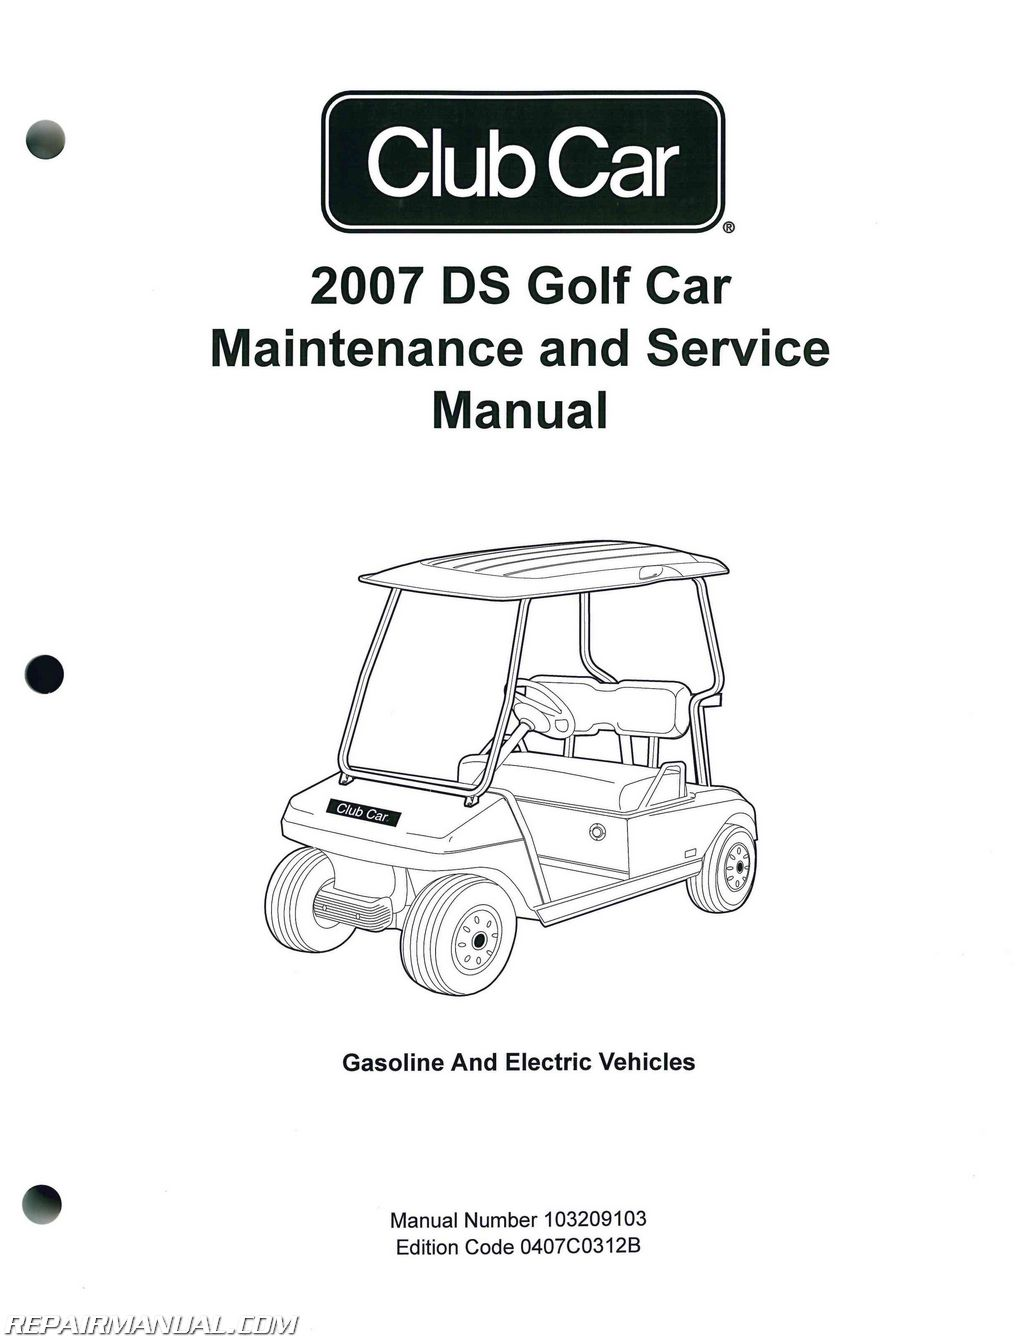 Electrical 36 Volt Ez Go Golf Cart Wiring Diagram